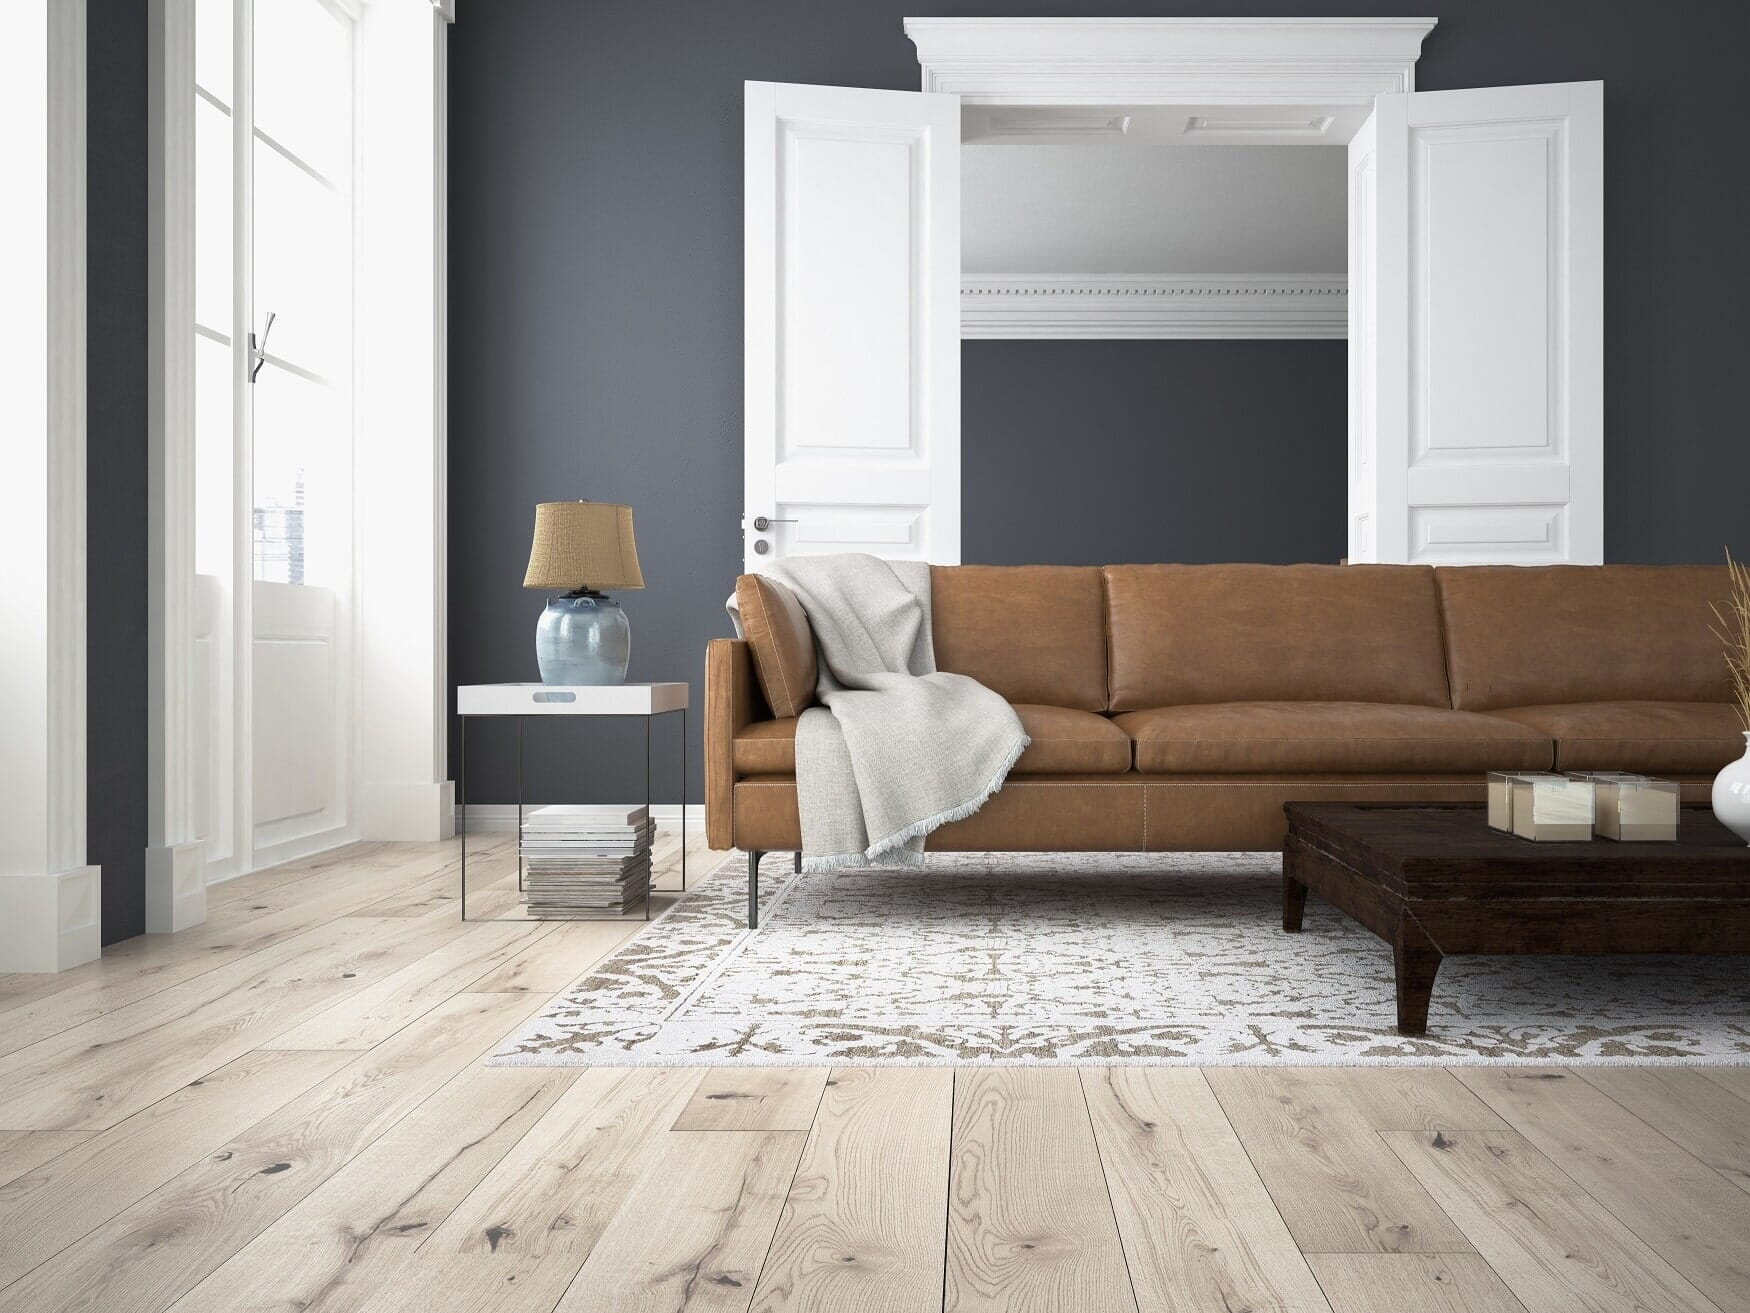 services re searching essex london skilled quality of outstanding floorox to floor wood the when from choose installation flooring for sanding you